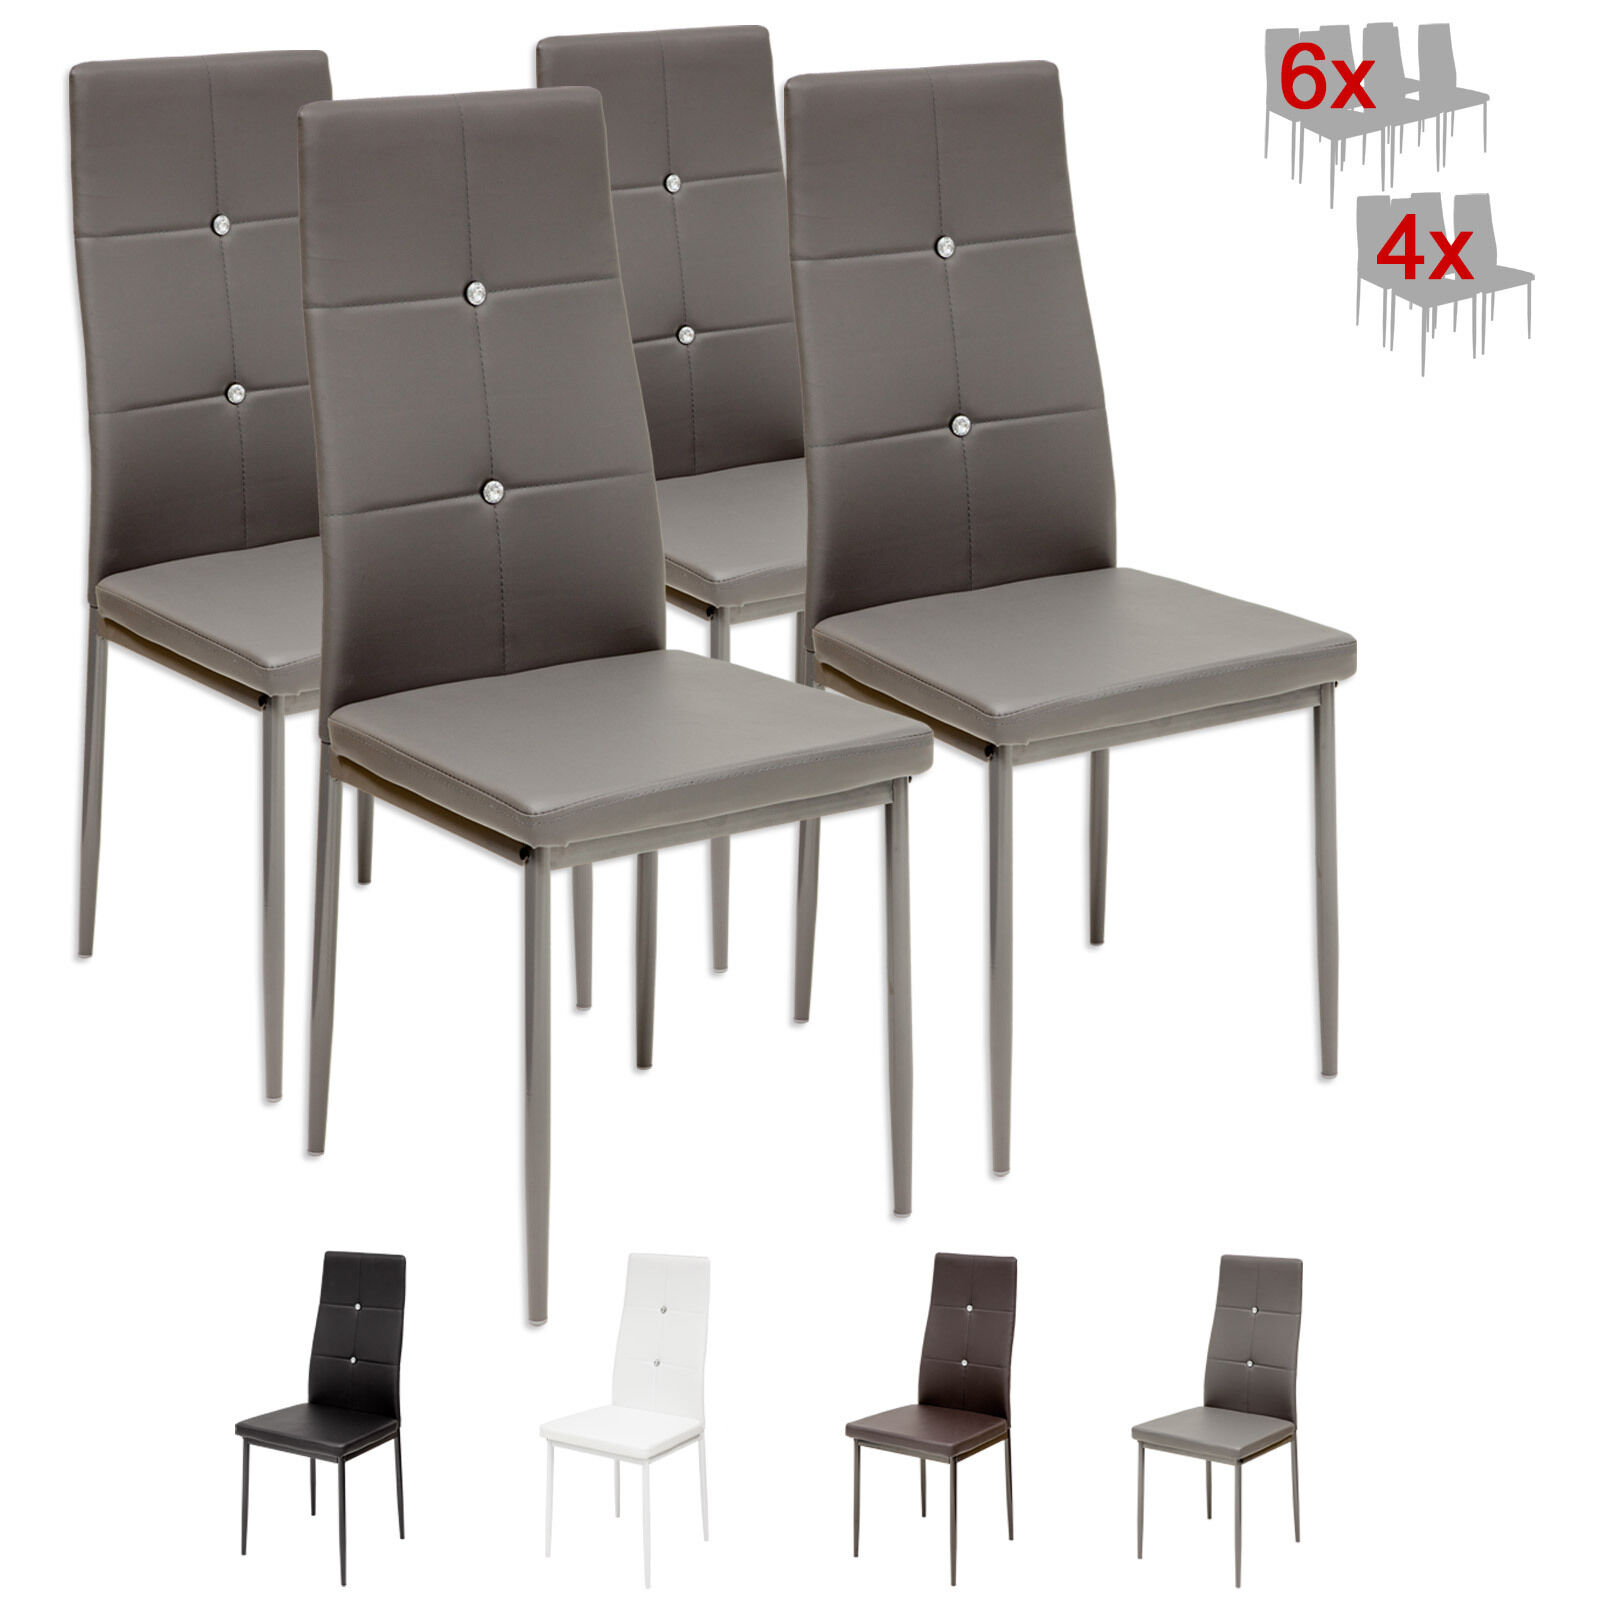 4 x esszimmerst hle diamond grau esszimmerstuhl k chenstuhl stuhl st hle eur 64 95. Black Bedroom Furniture Sets. Home Design Ideas